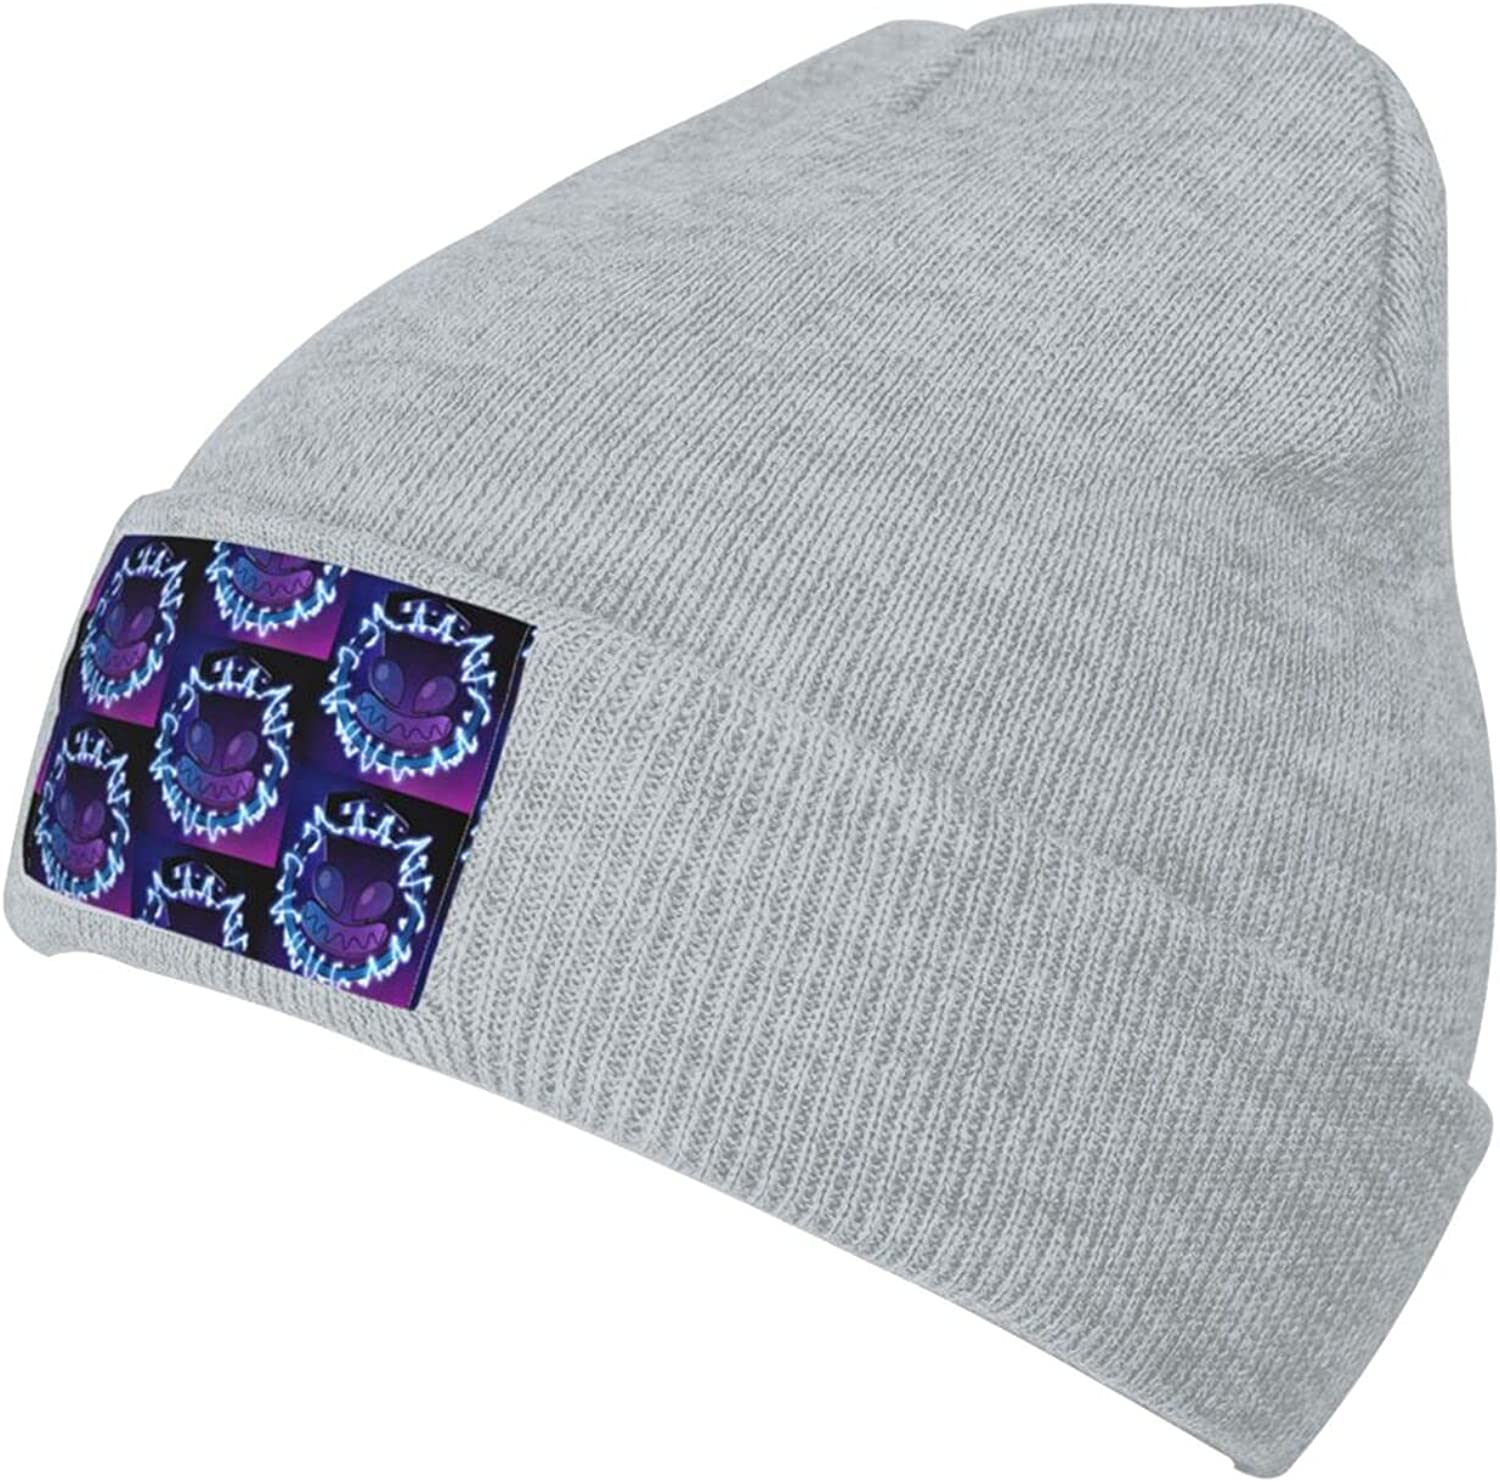 Ruporch OFFicial 40% OFF Cheap Sale Invader-Zim Knit Hat Beanie Unisex Adult Hats fo Cap